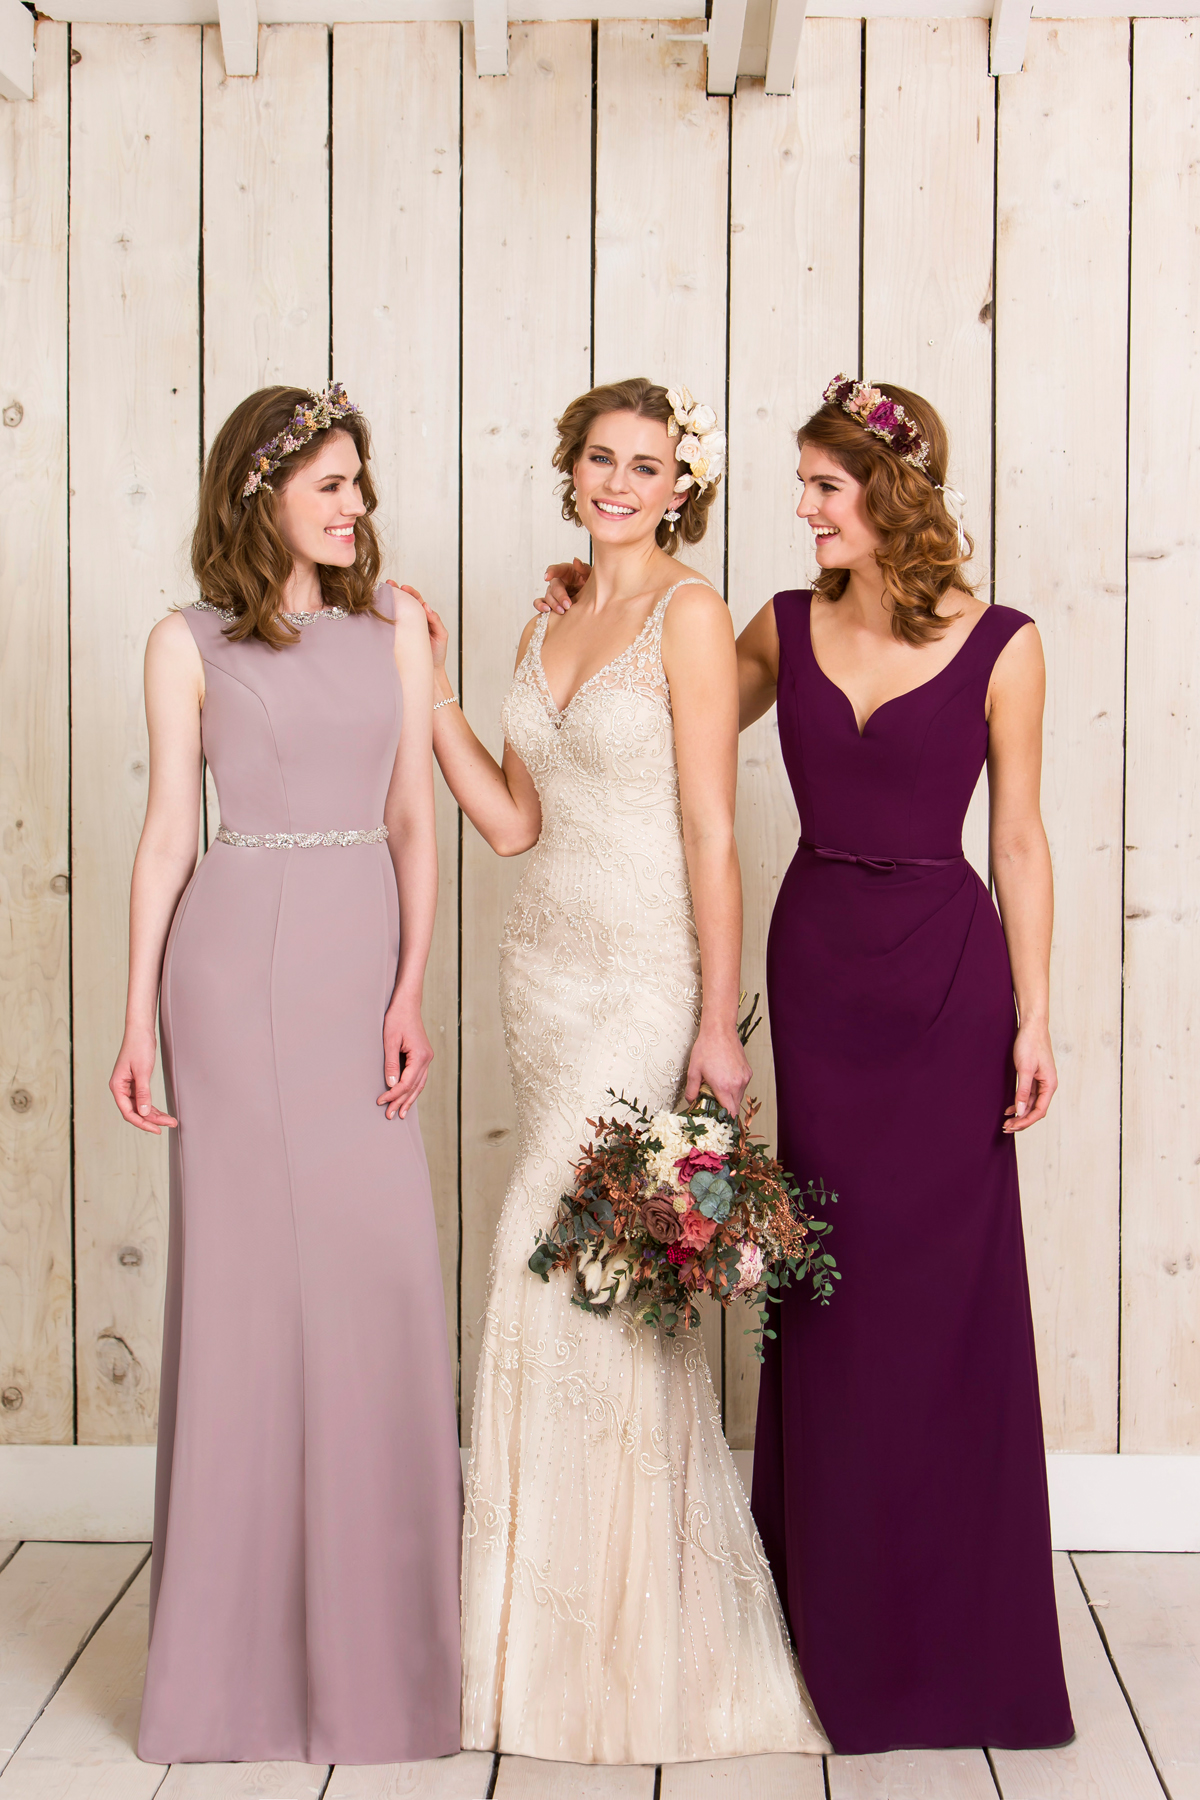 Of Dresses For Brides Bridesmaids 67